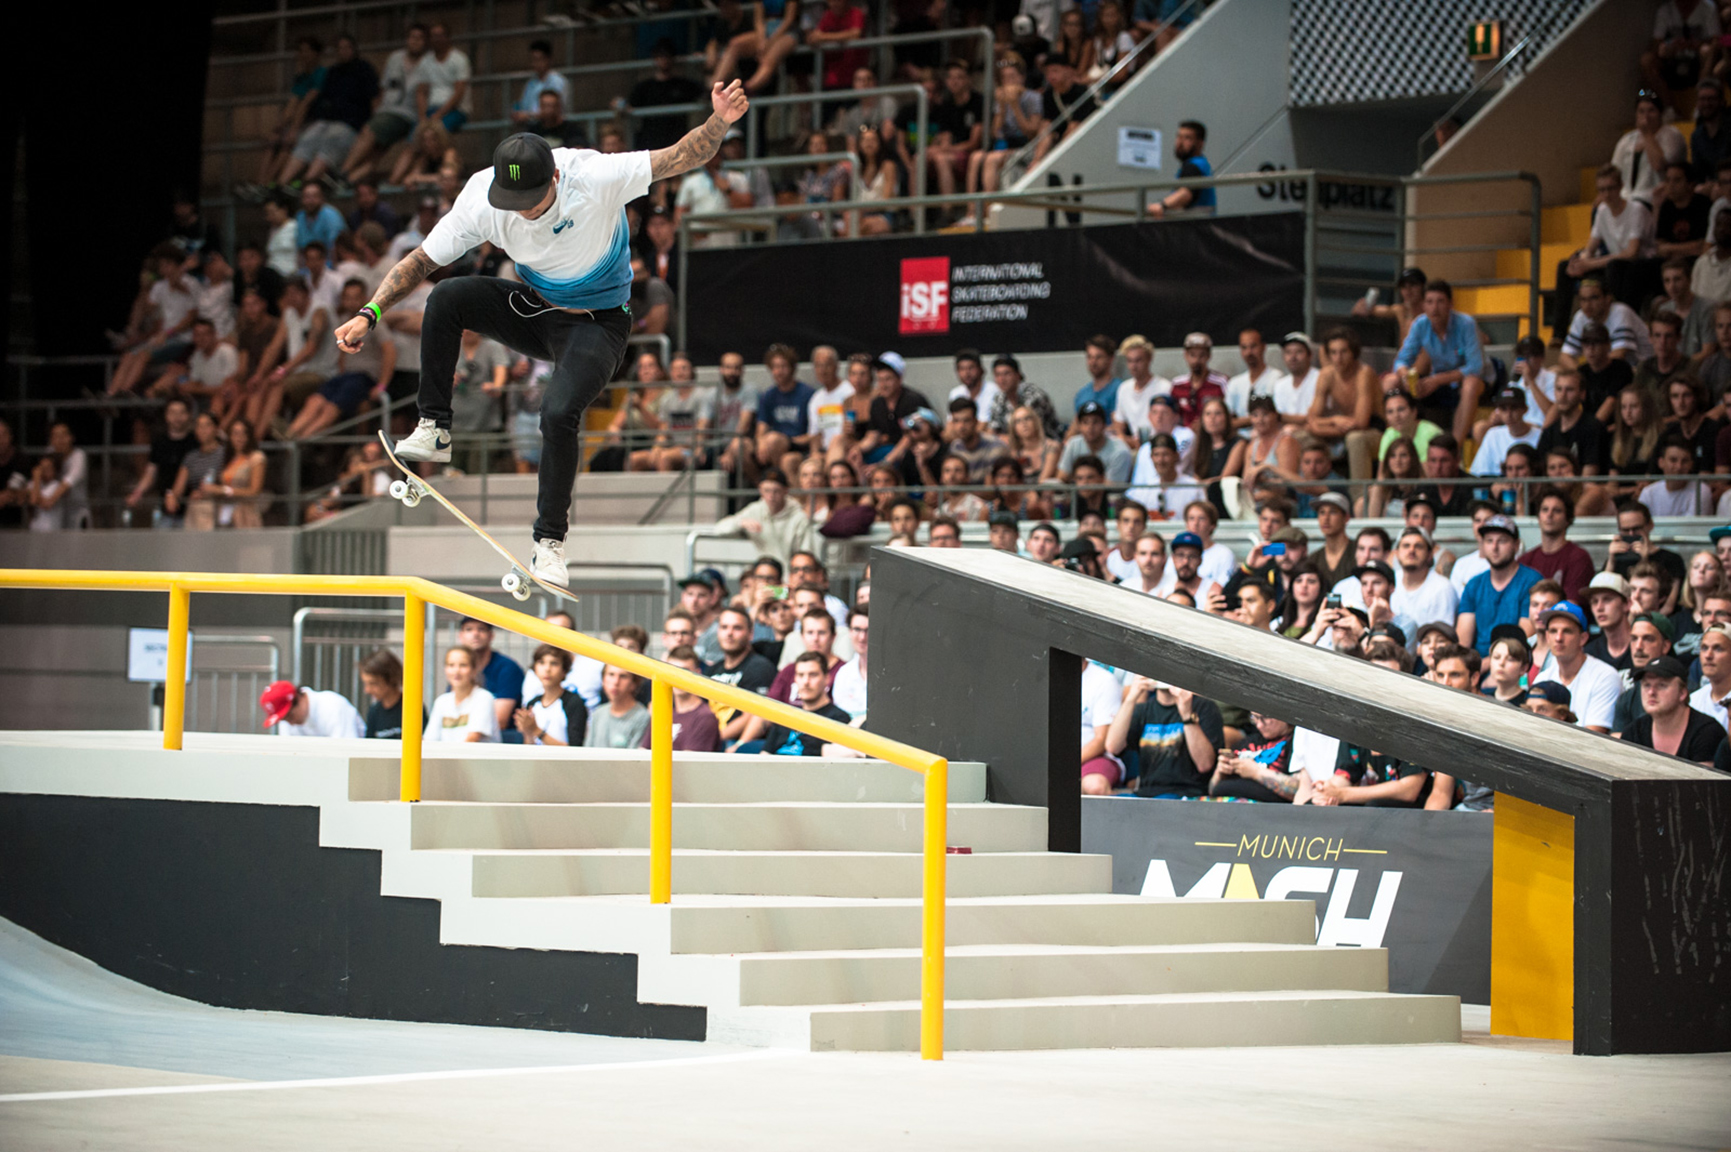 I've never broken a bone, says Nyjah Huston, who added to his list of wins with another win at the 2017 Street League Munich stop in late June.